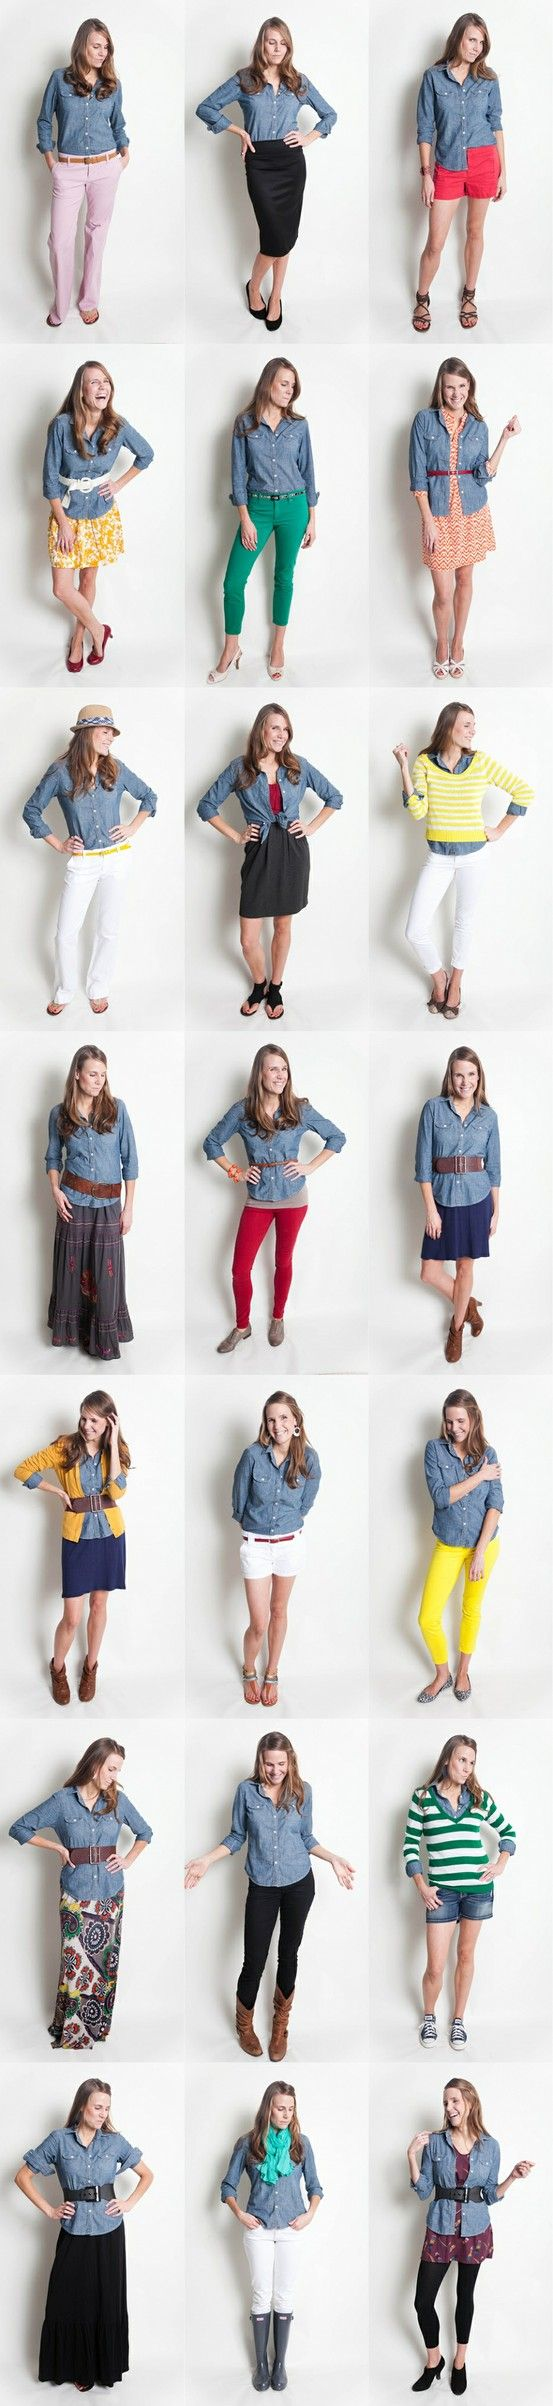 21 ways to wear your denim/jean/chambray shirt - love the burnt yellow cami over the denim shirt!!